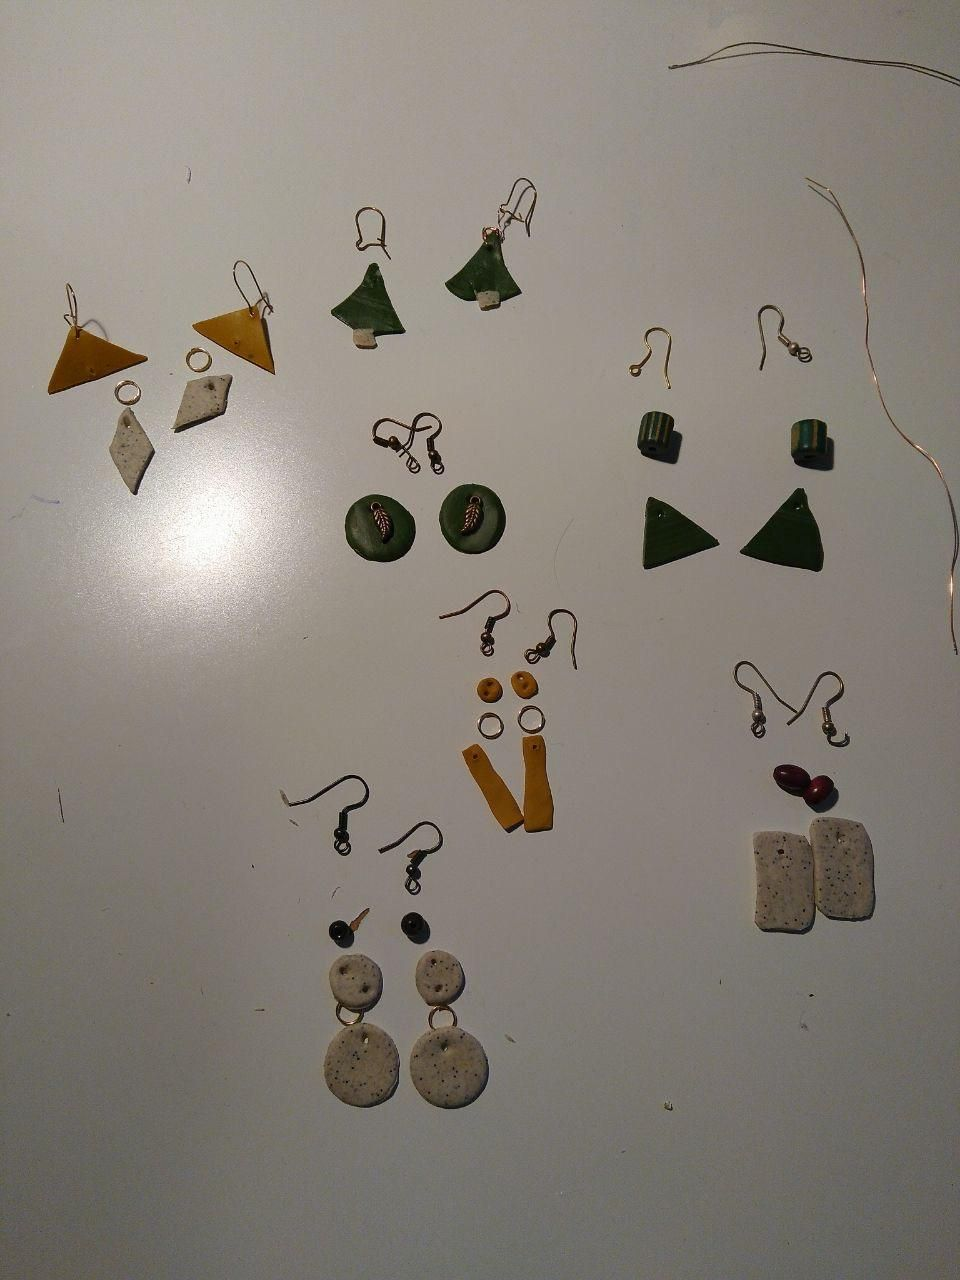 Earrings - image 6 - student project